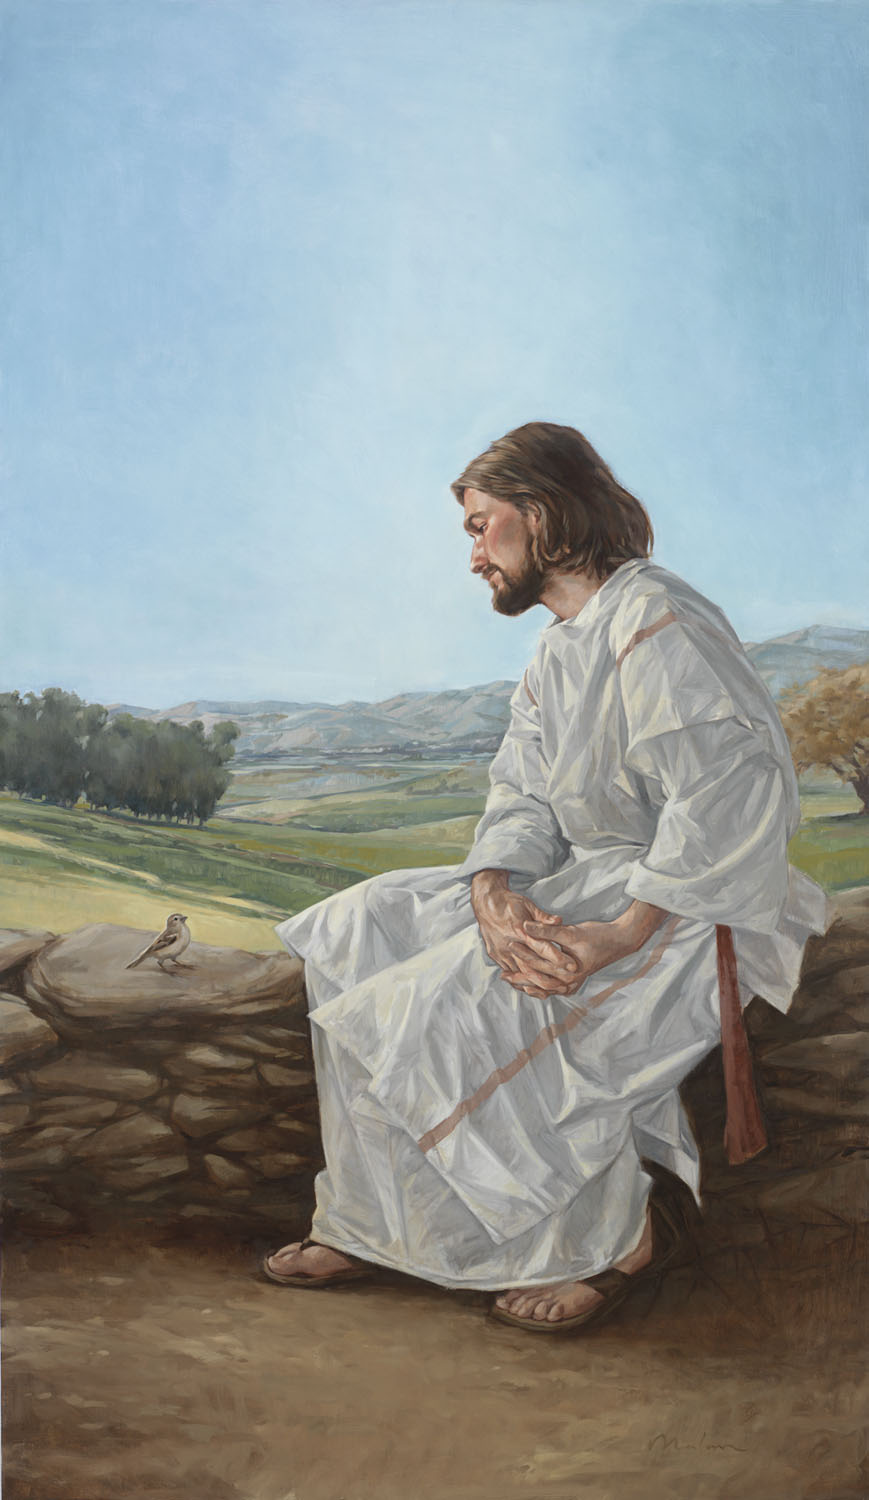 David Malan (American, b. 1980), Christ & the Sparrow, Oil on Canvas, 42 x 24 in.